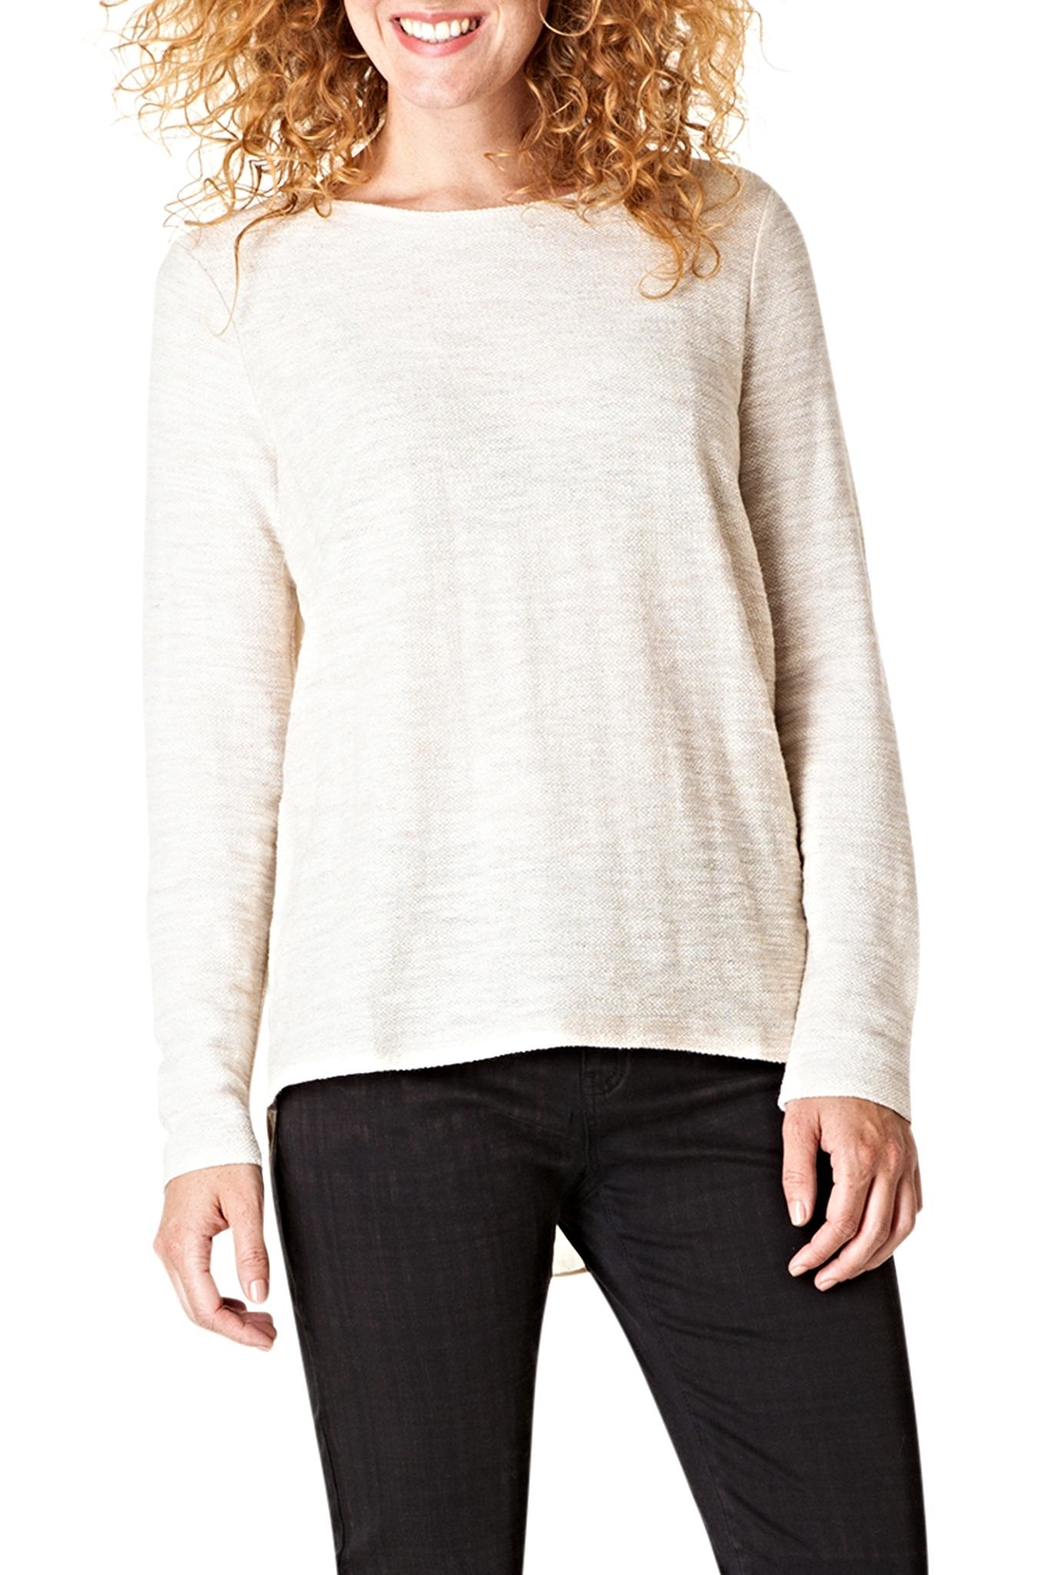 Yest Shimmer Holiday Top - Main Image